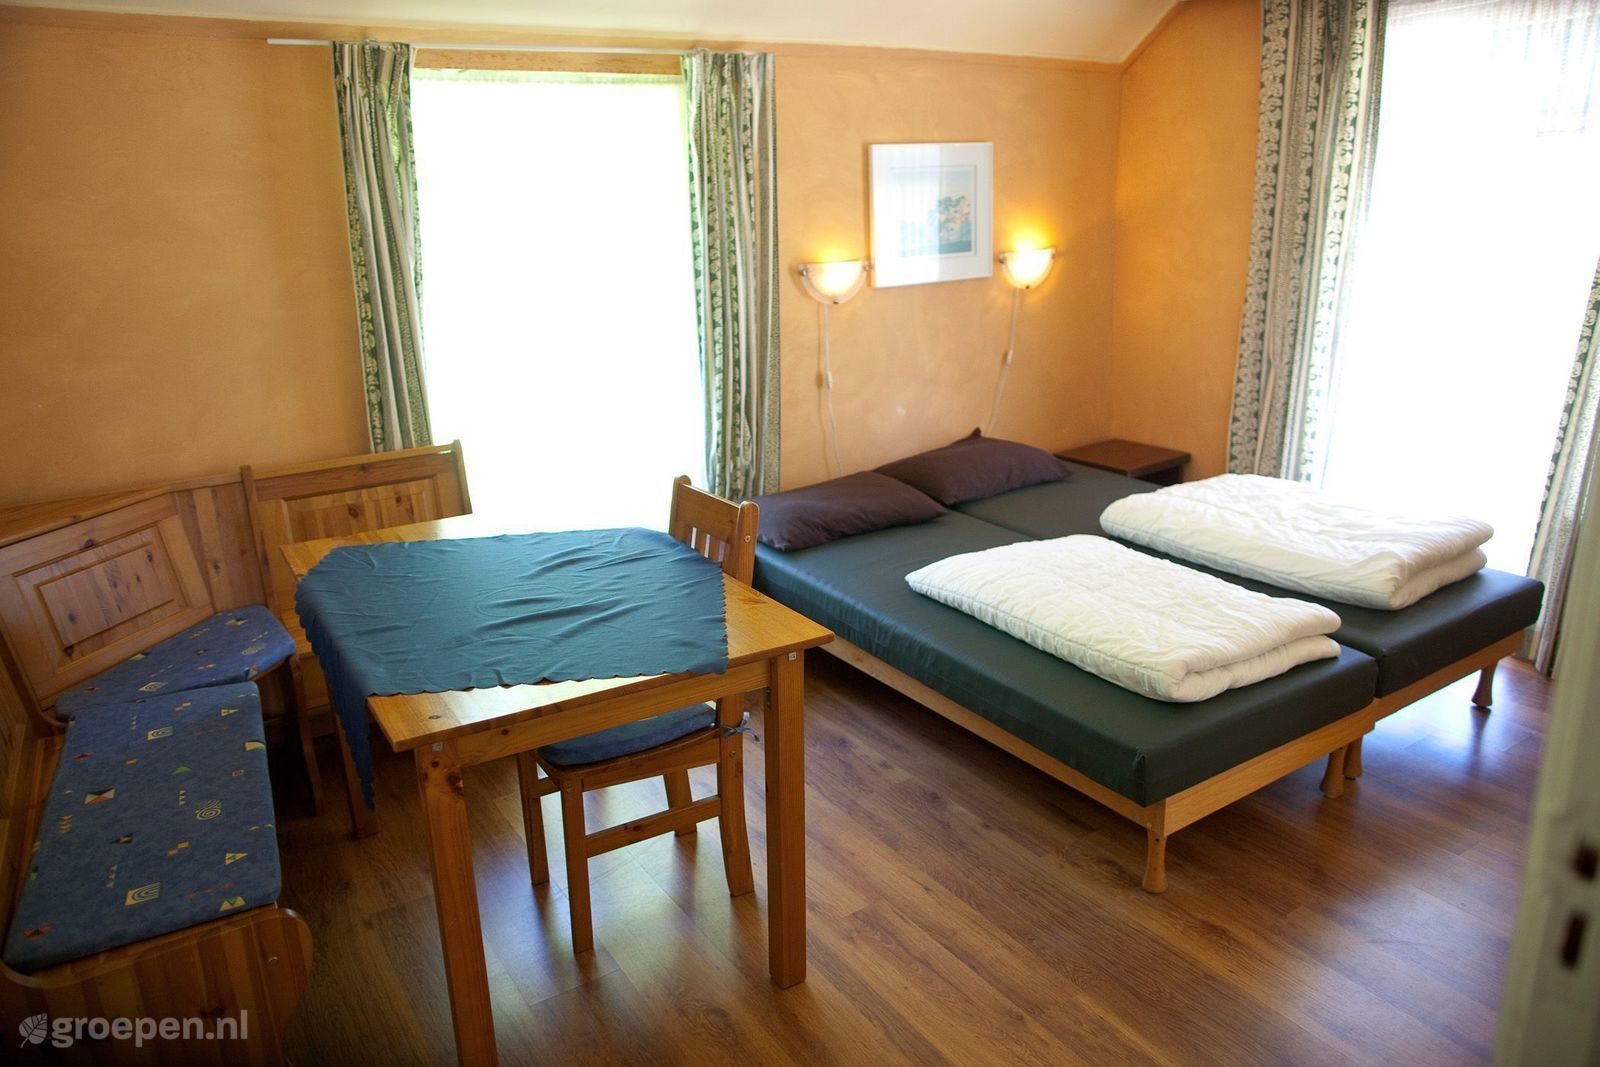 Group accommodation Diever